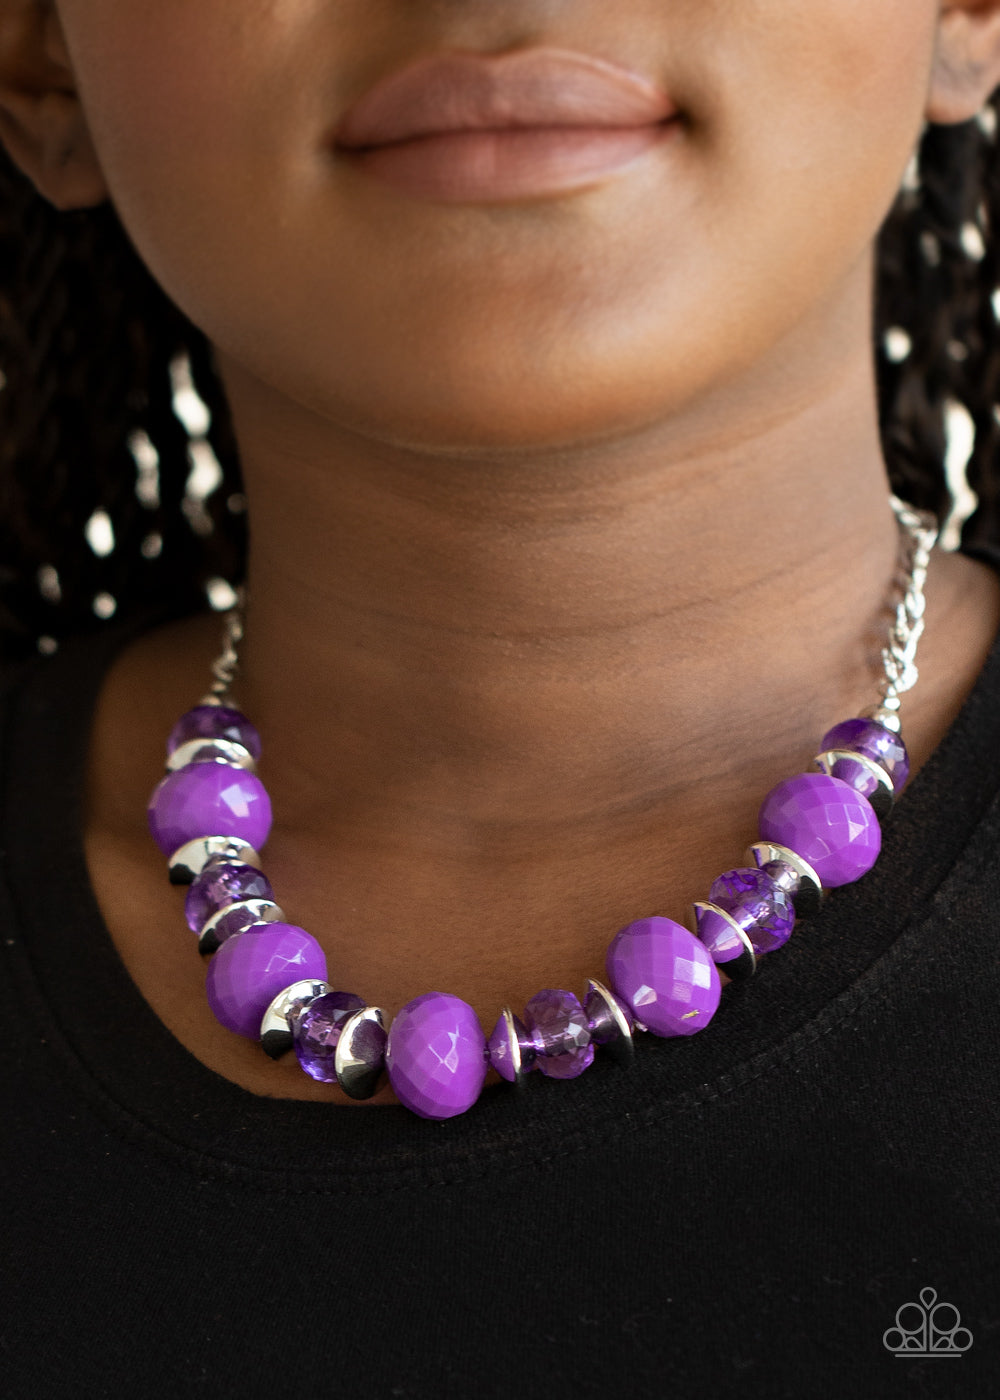 Paparazzi Jewelry & Accessories - Hollywood Gossip - Purple Necklace. Bling By Titia Boutique